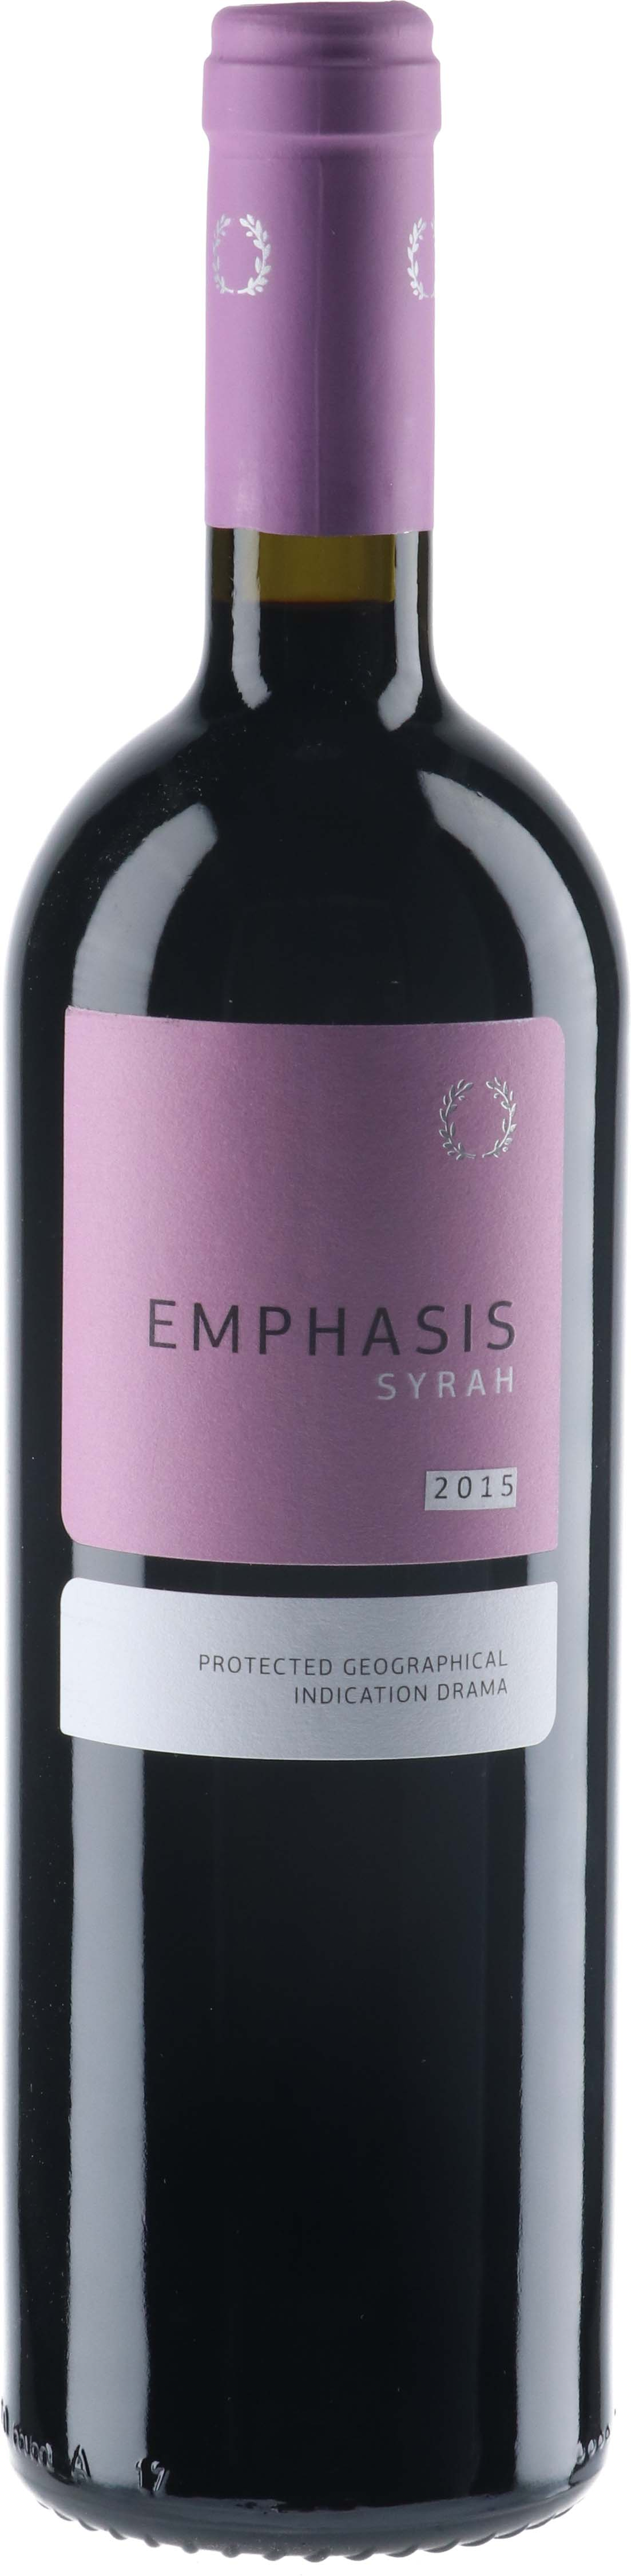 2015 Emphasis Syrah